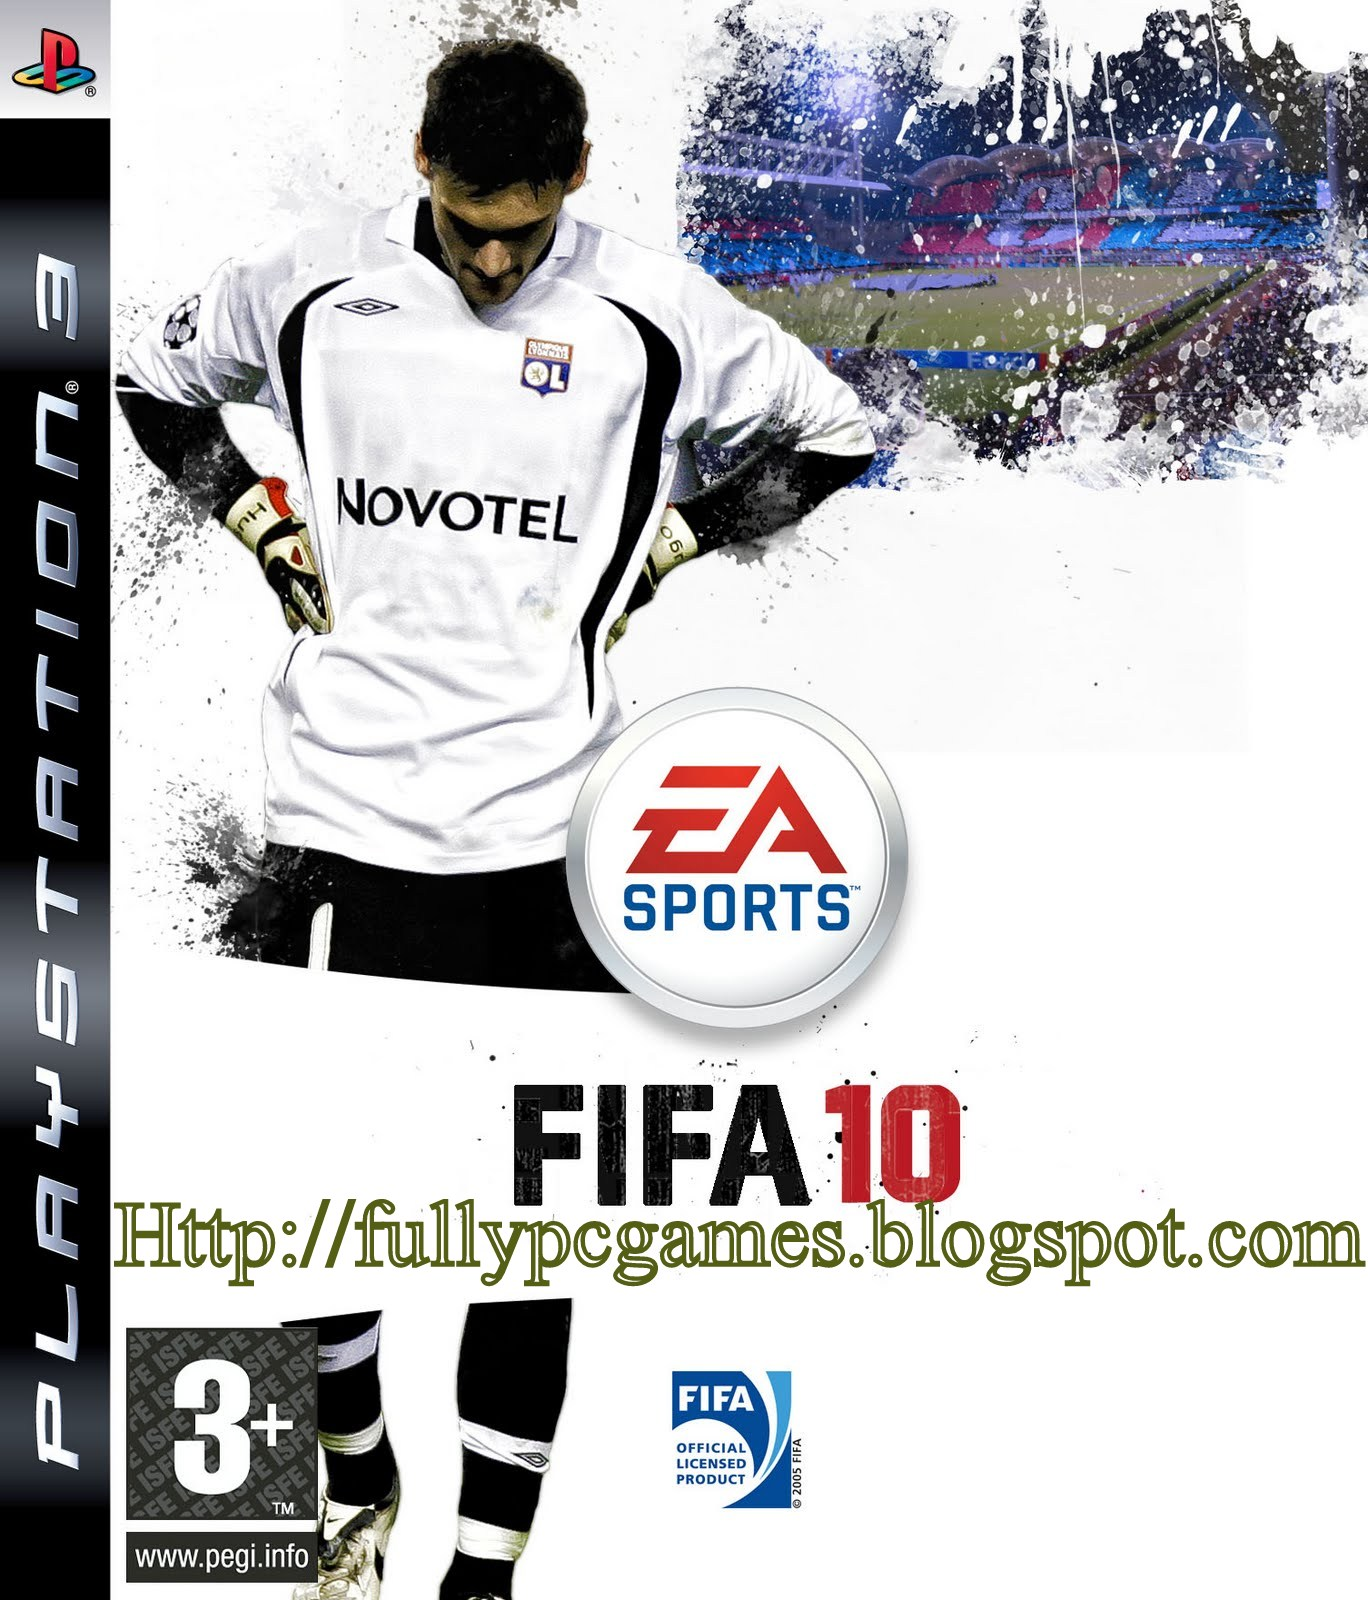 FIFA 10 Game Download Free For PC Full Version - downloadpcgamescom